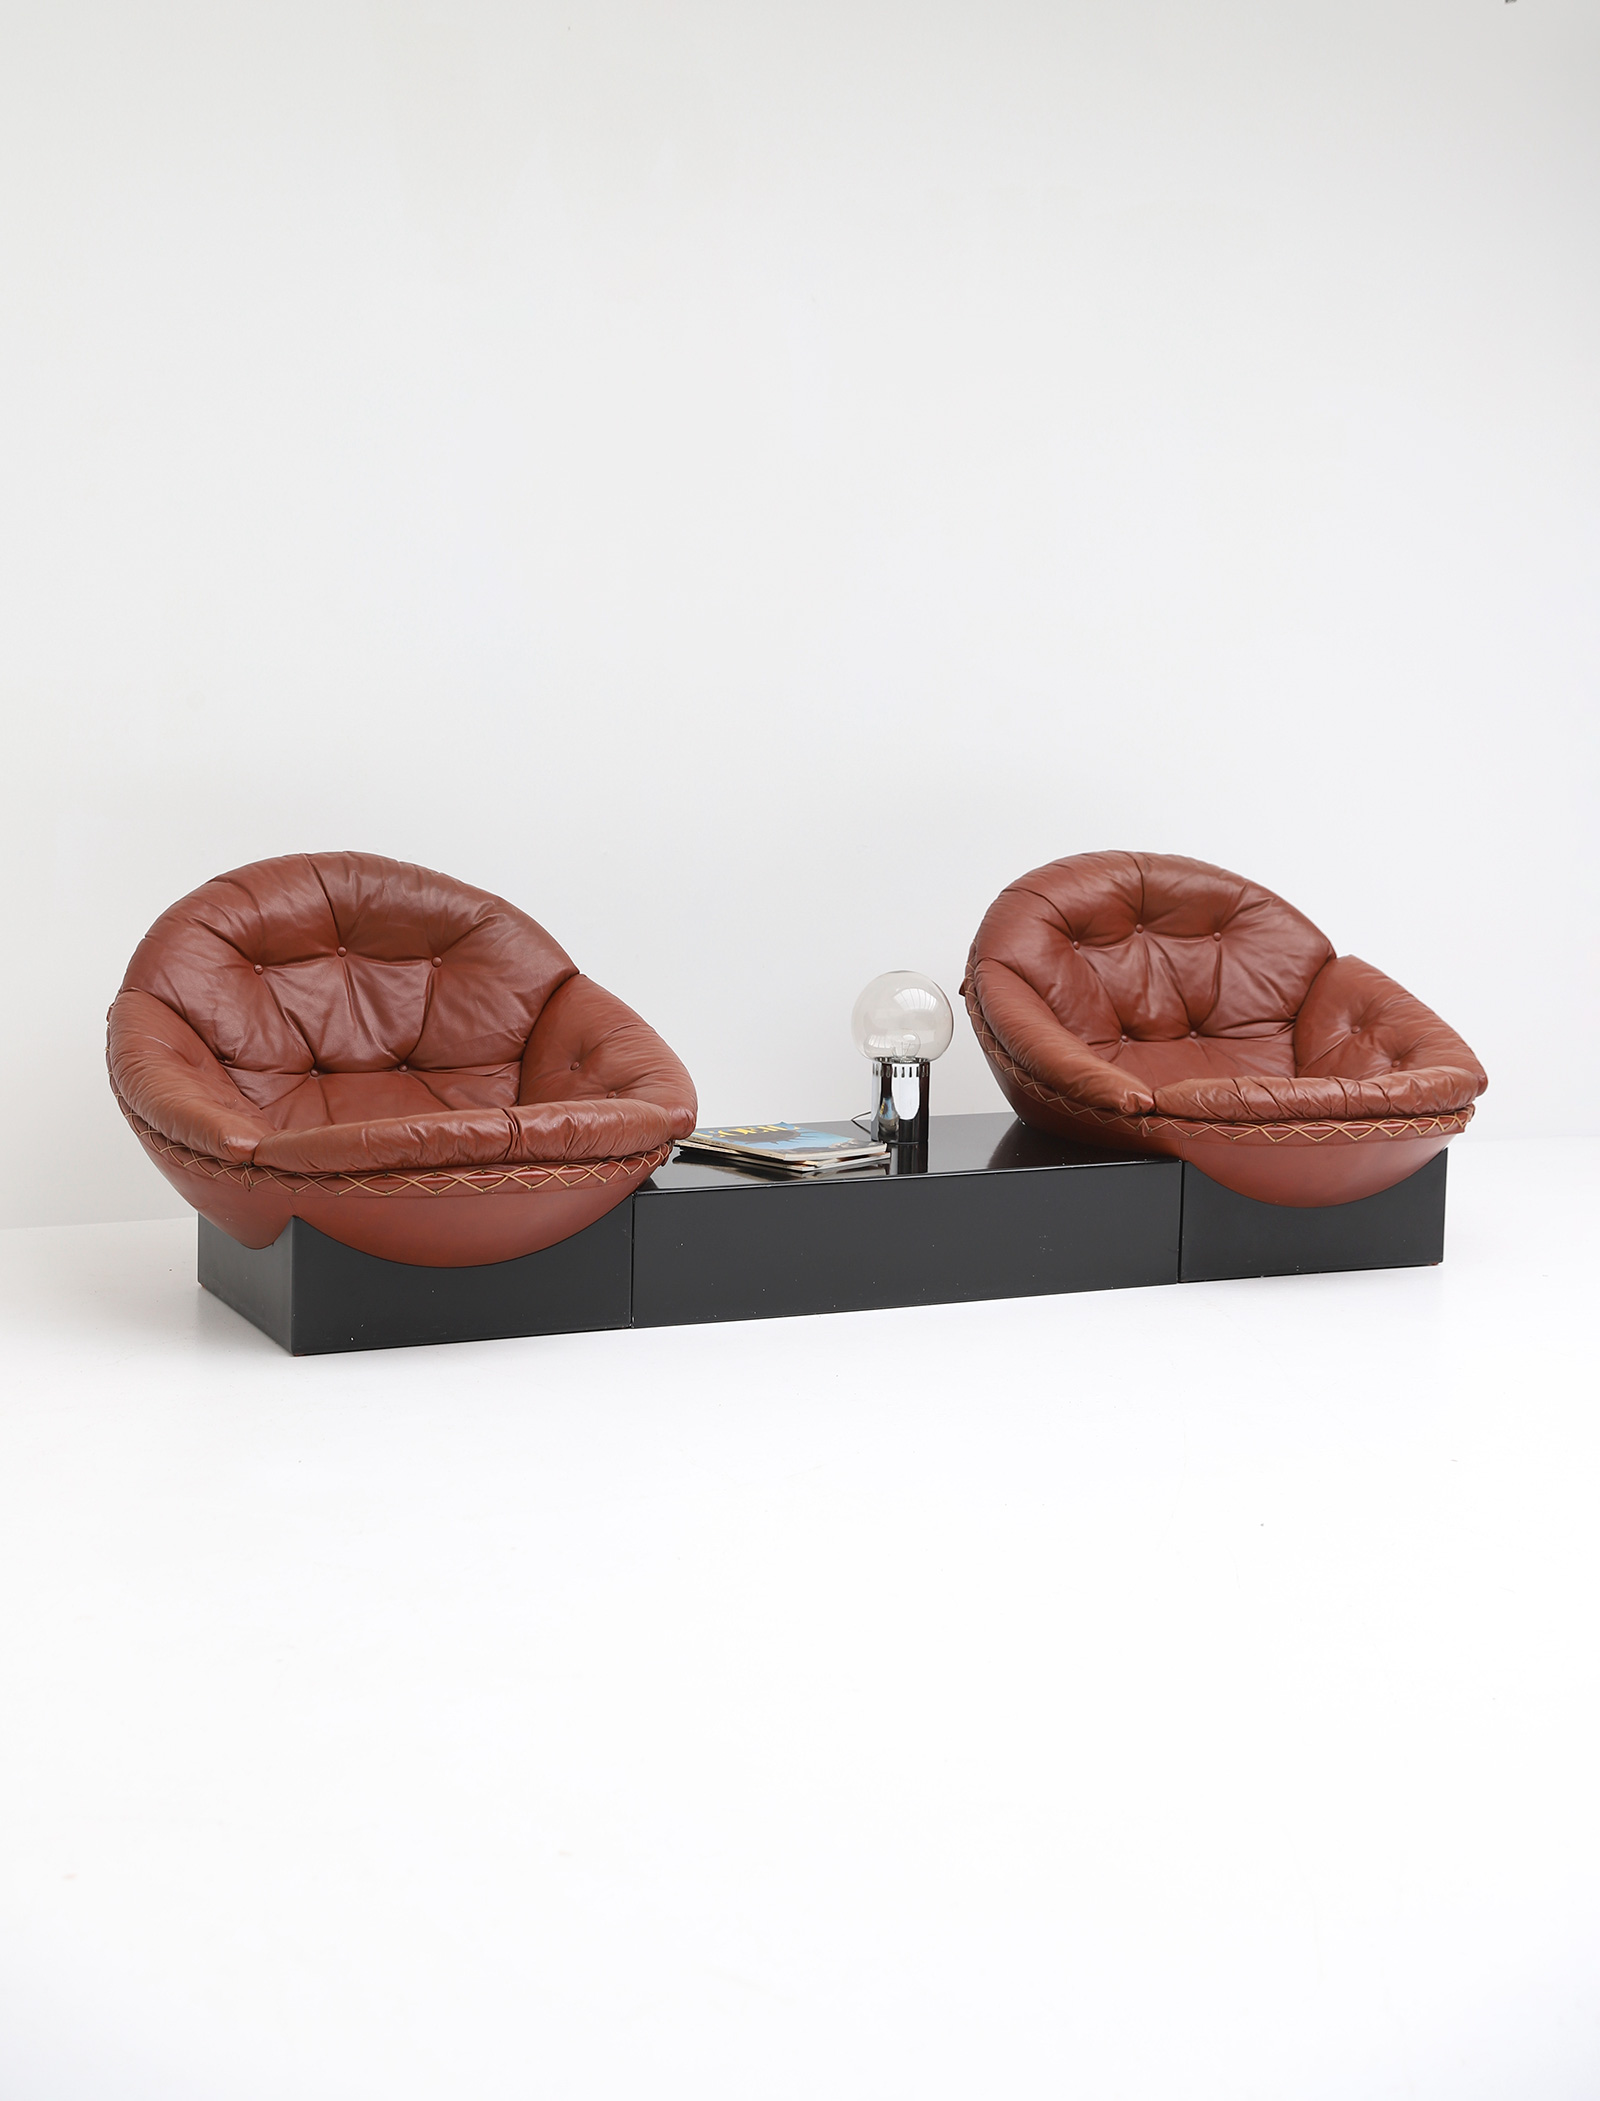 Leather Lounge Chairs by Illum Wikkelso for Ryesberg 1970simage 8